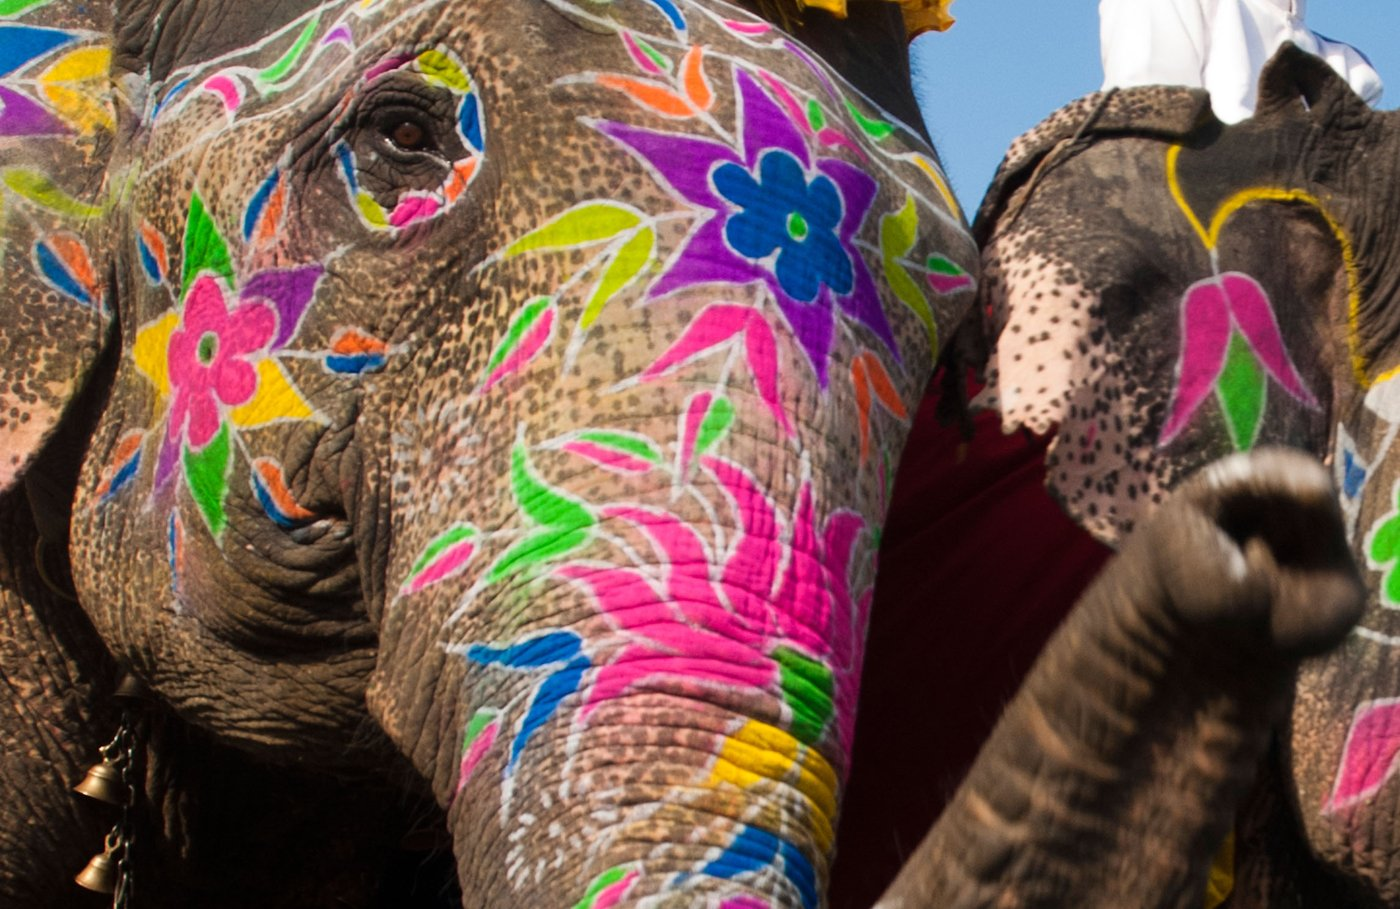 Two Indian man on painted elephants during the Annual Jaipur Elephant Festival